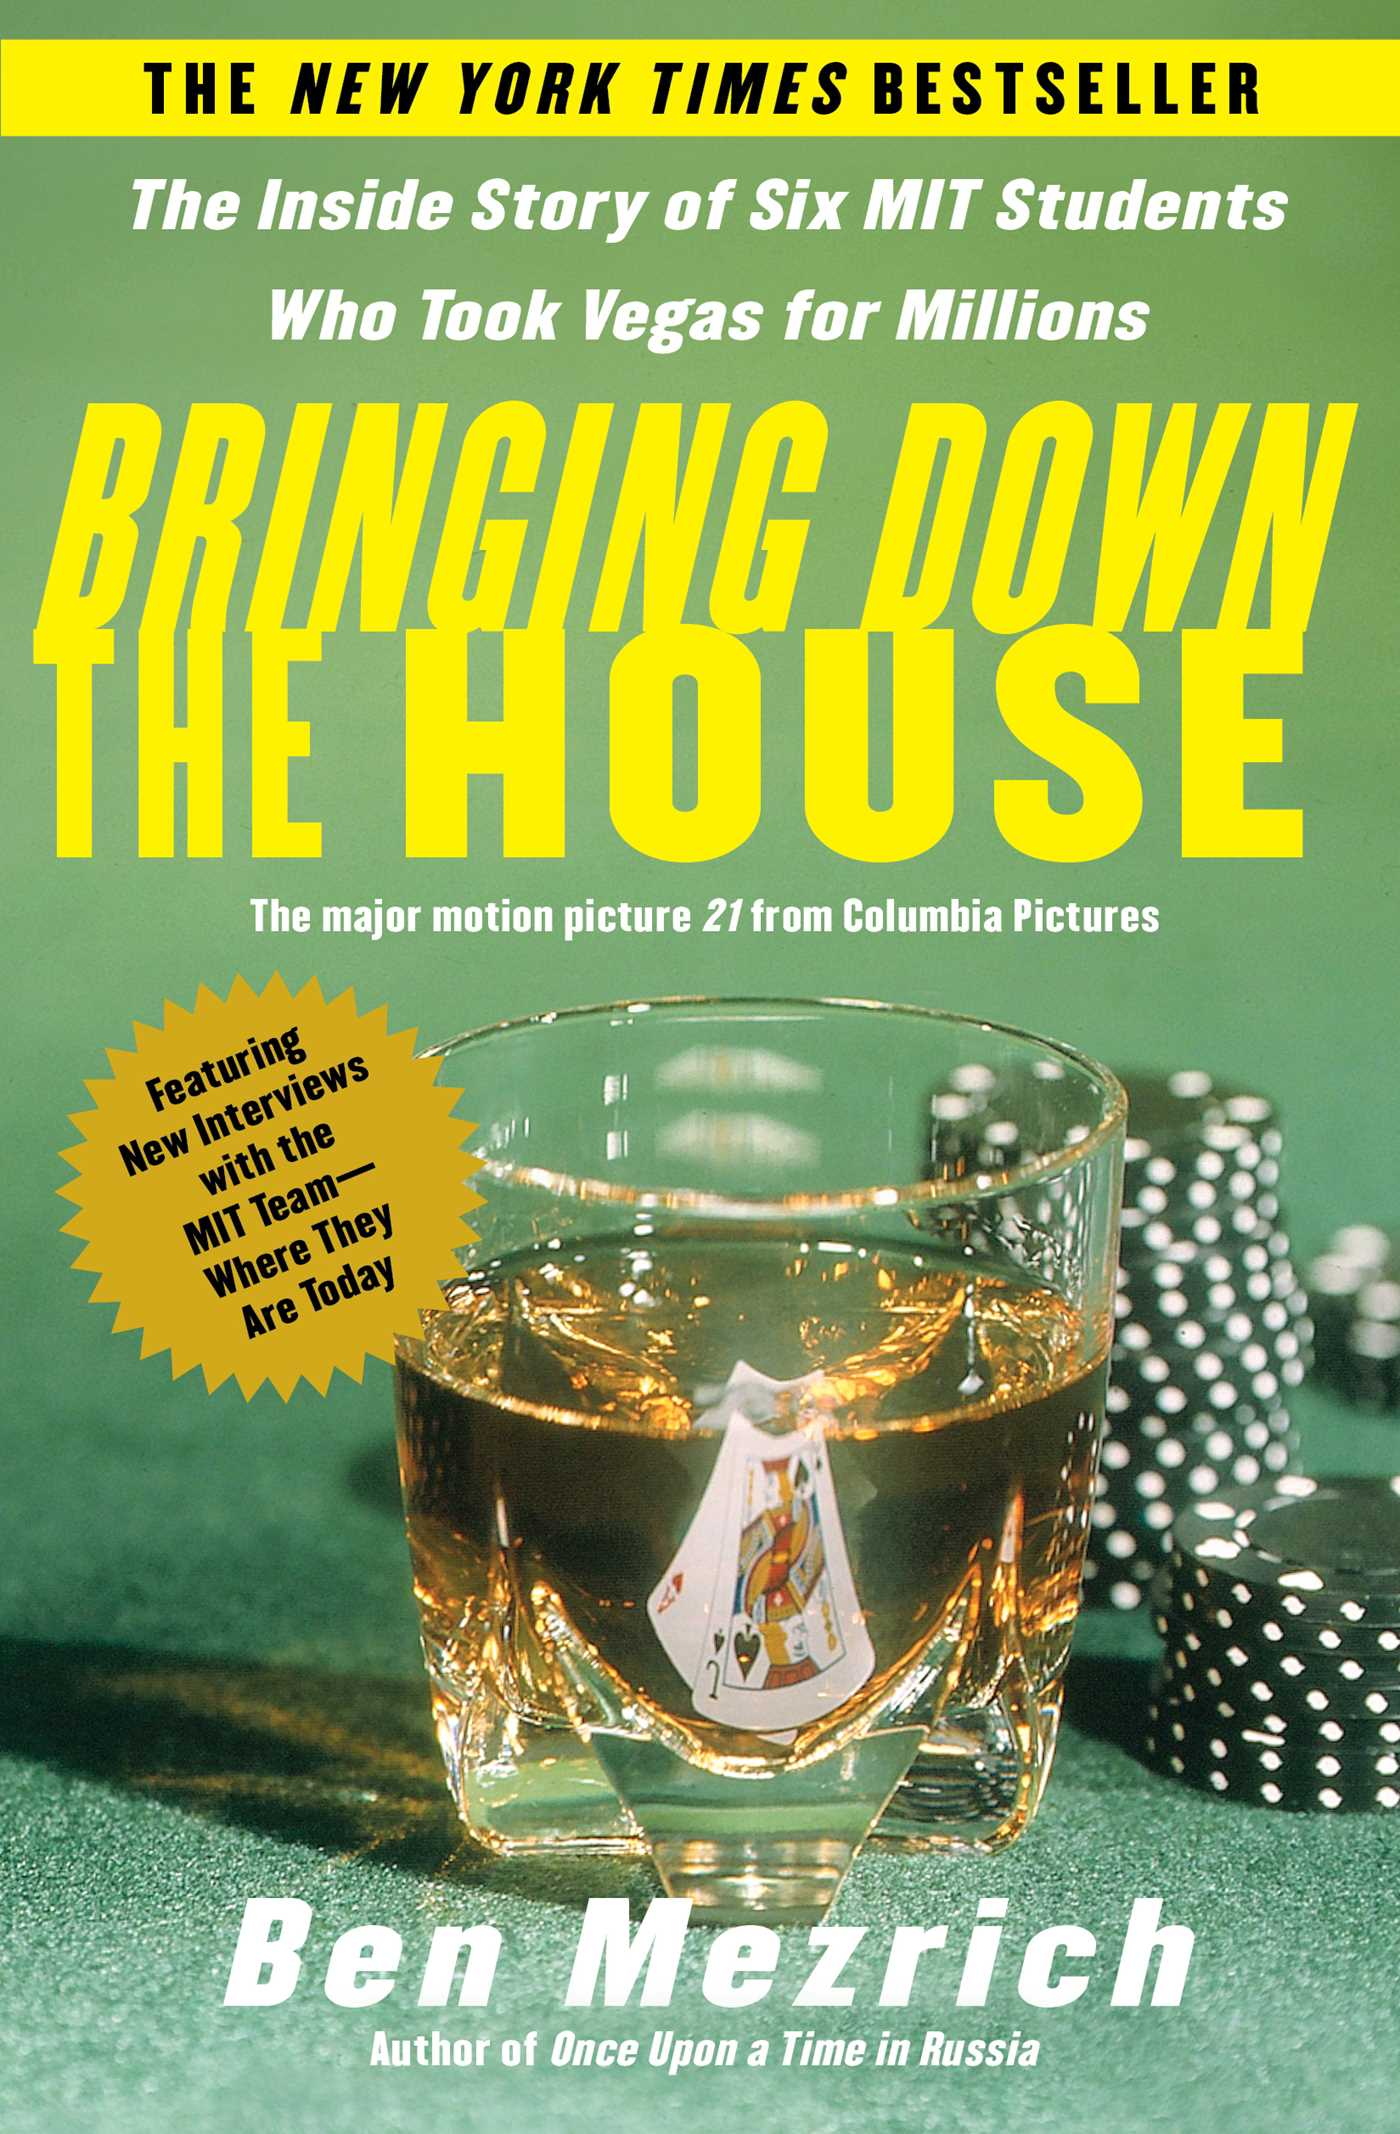 Bringing-down-the-house-9780743249997_hr